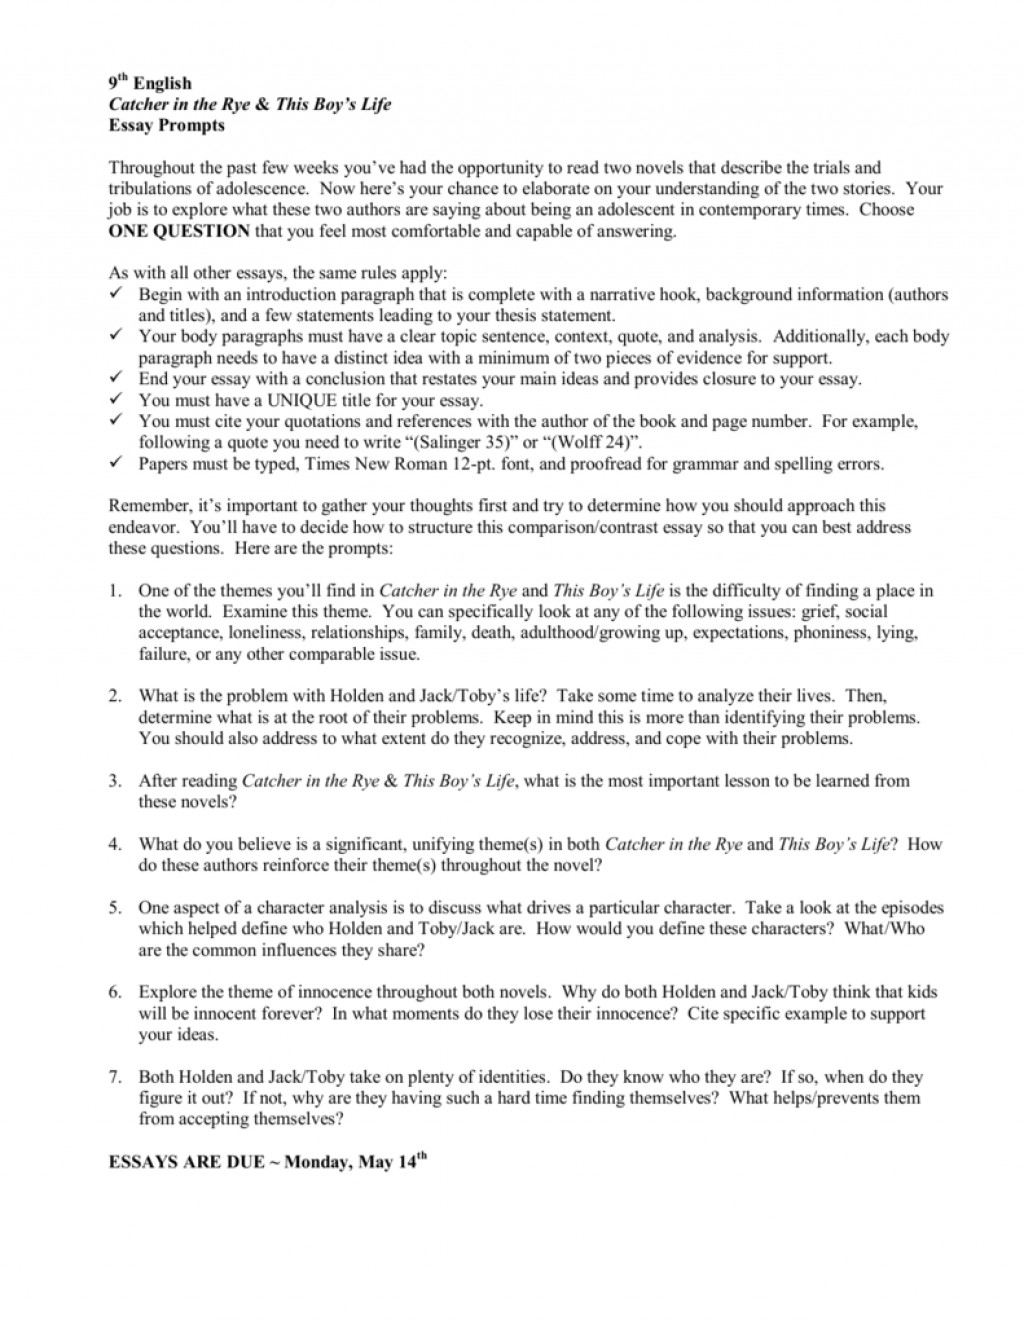 001 Essay Example The Catcher In Rye 008679274 1 Amazing Titles Questions And Answers Topics Large